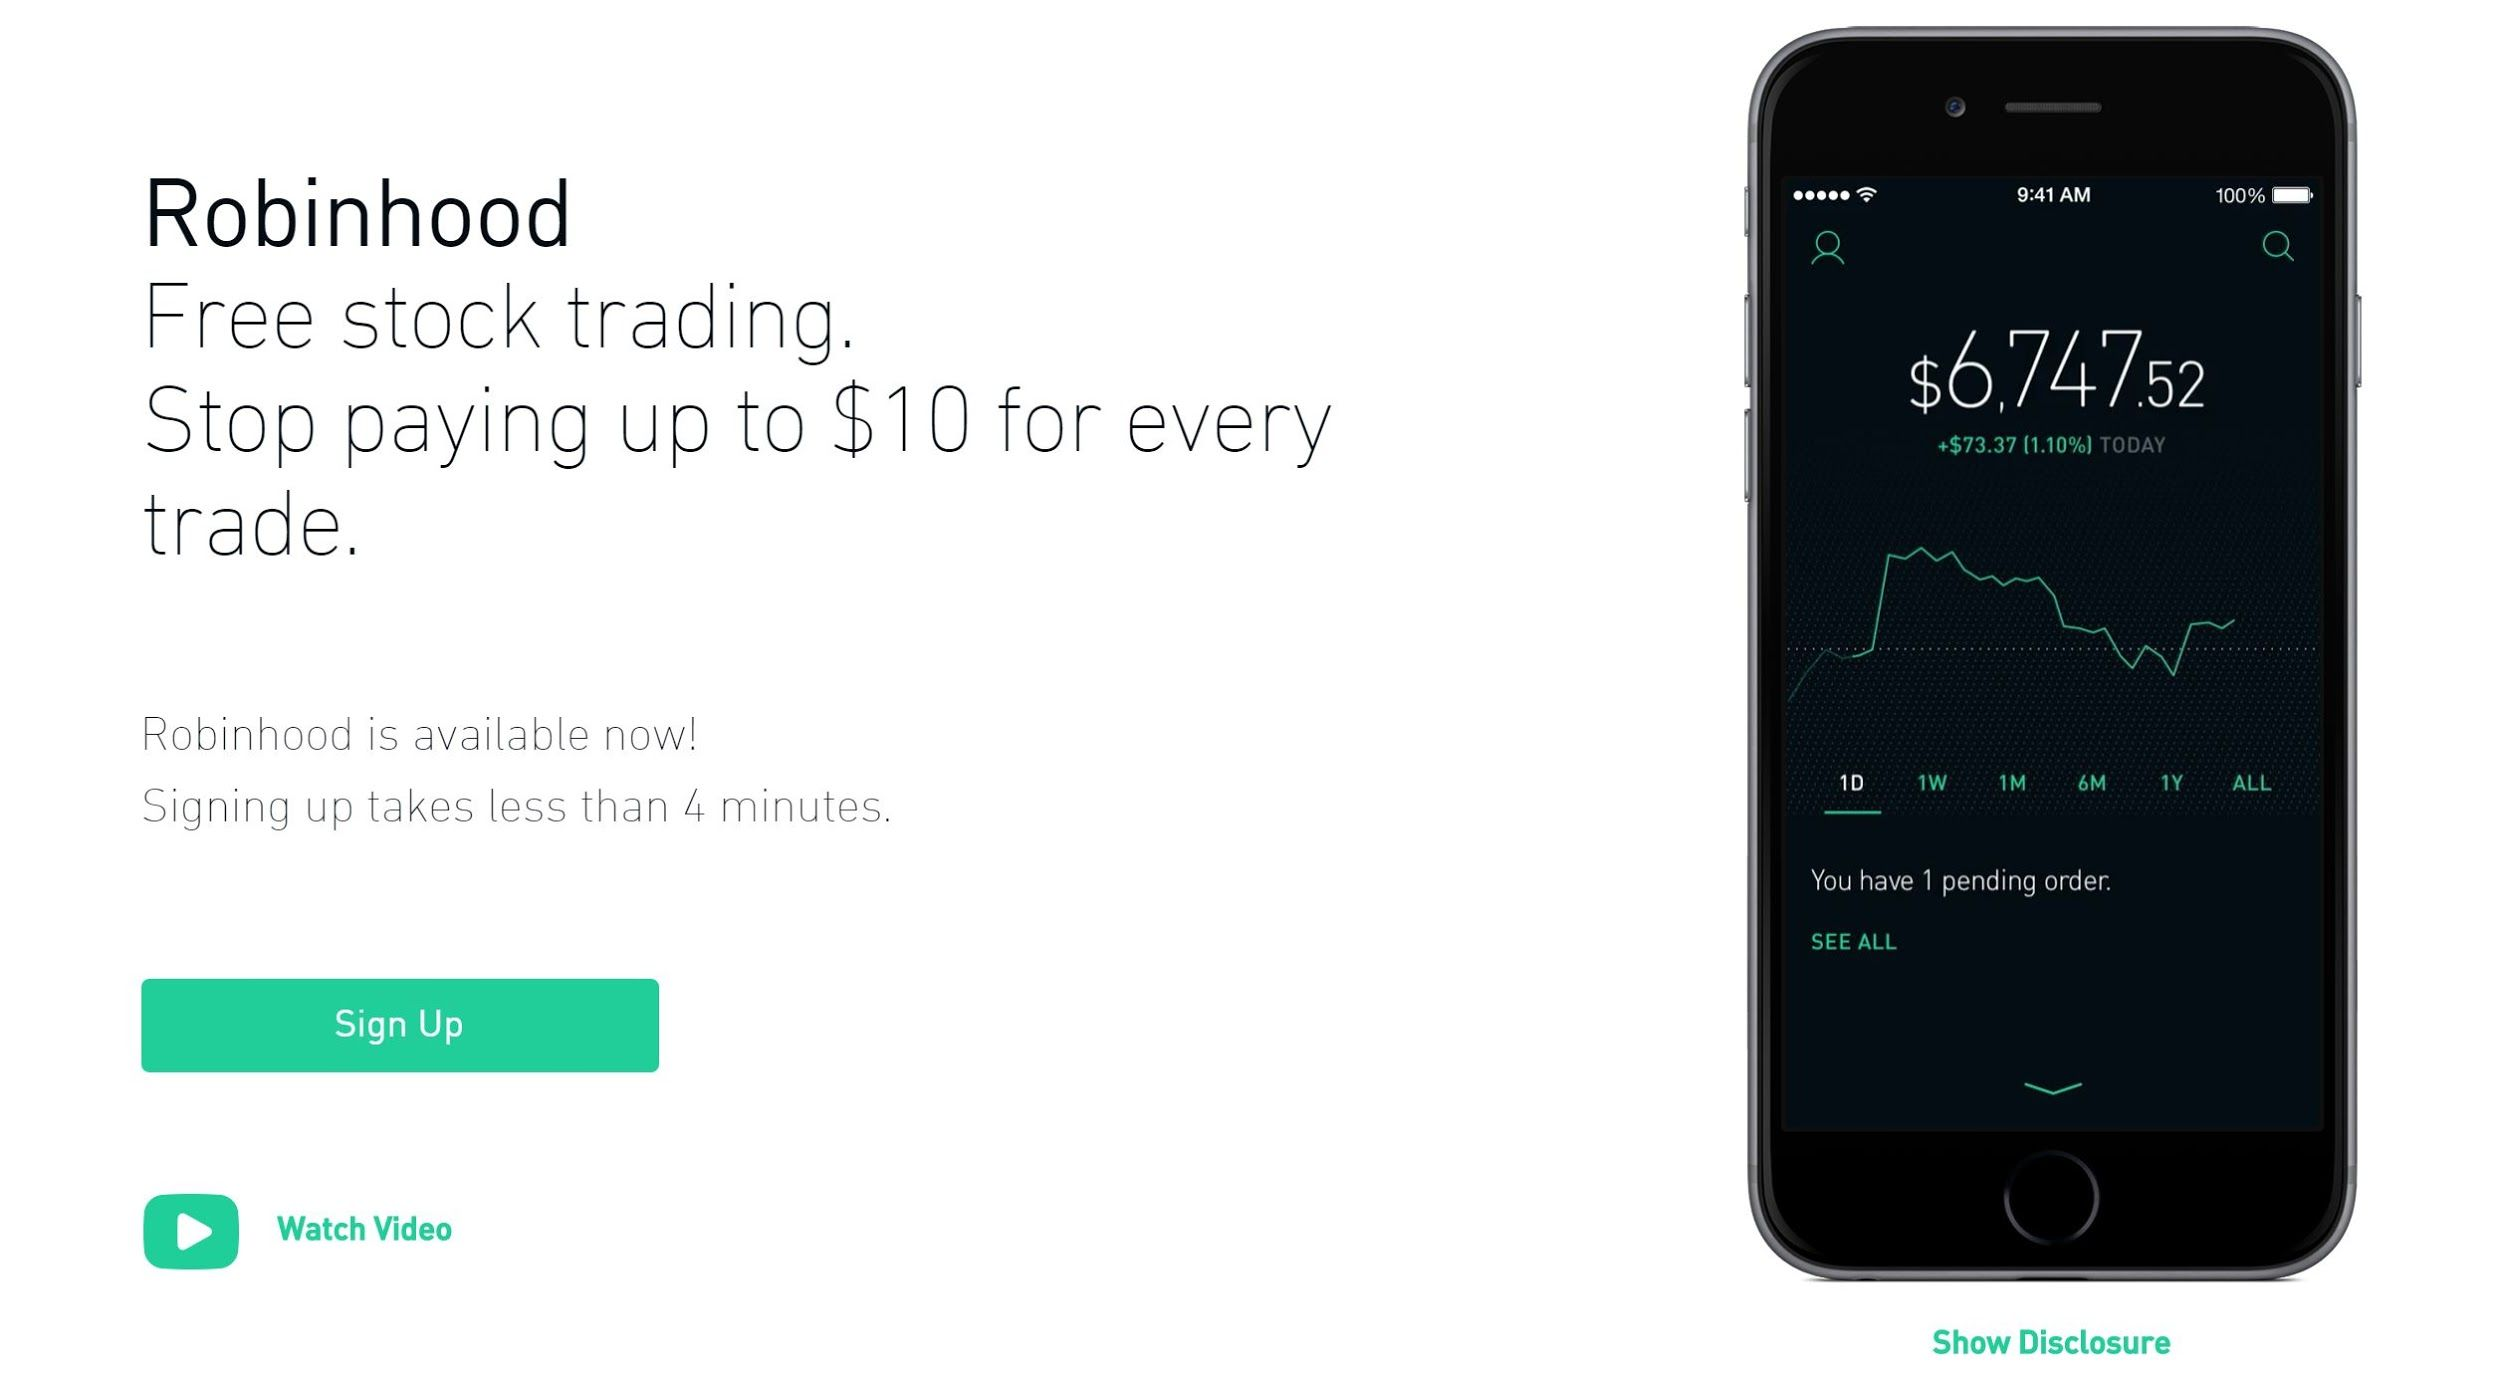 How Robinhood Became the First Financial App to Receive an